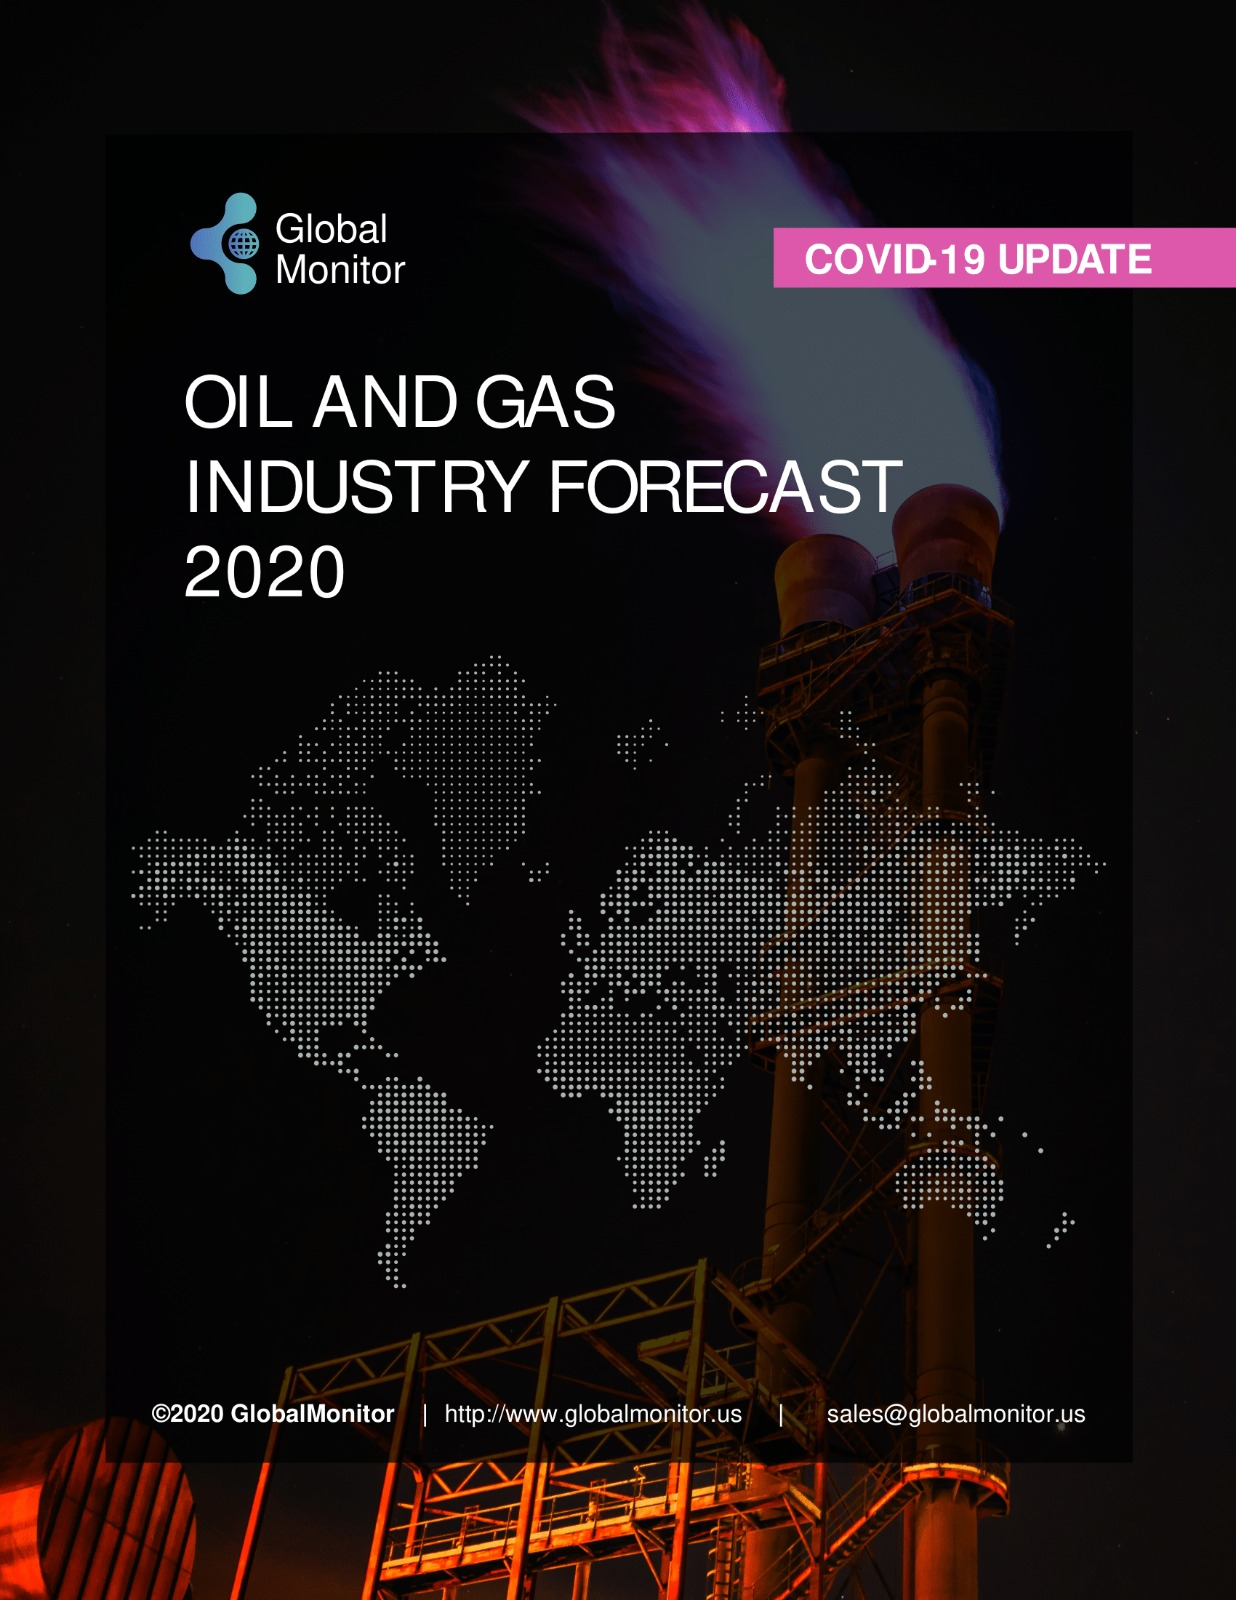 Bulgaria Oil and Gas Market Report with COVID-19 impact Analysis (2020-2025)